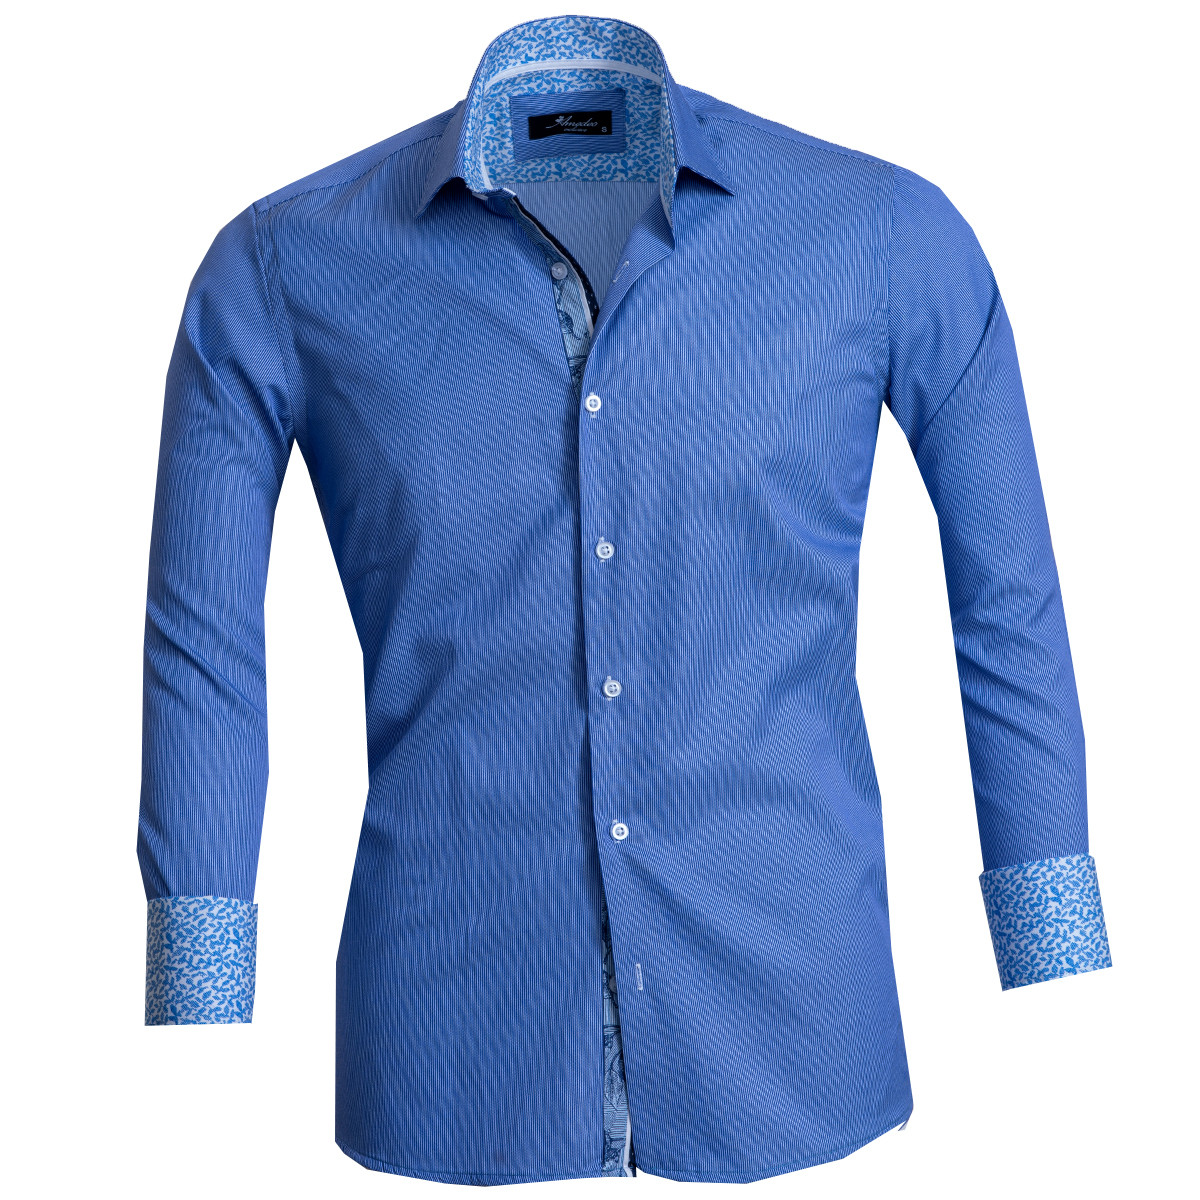 European Made & Designed Reversible Cuff Premium French Cuff Dress Shirt - blue lines